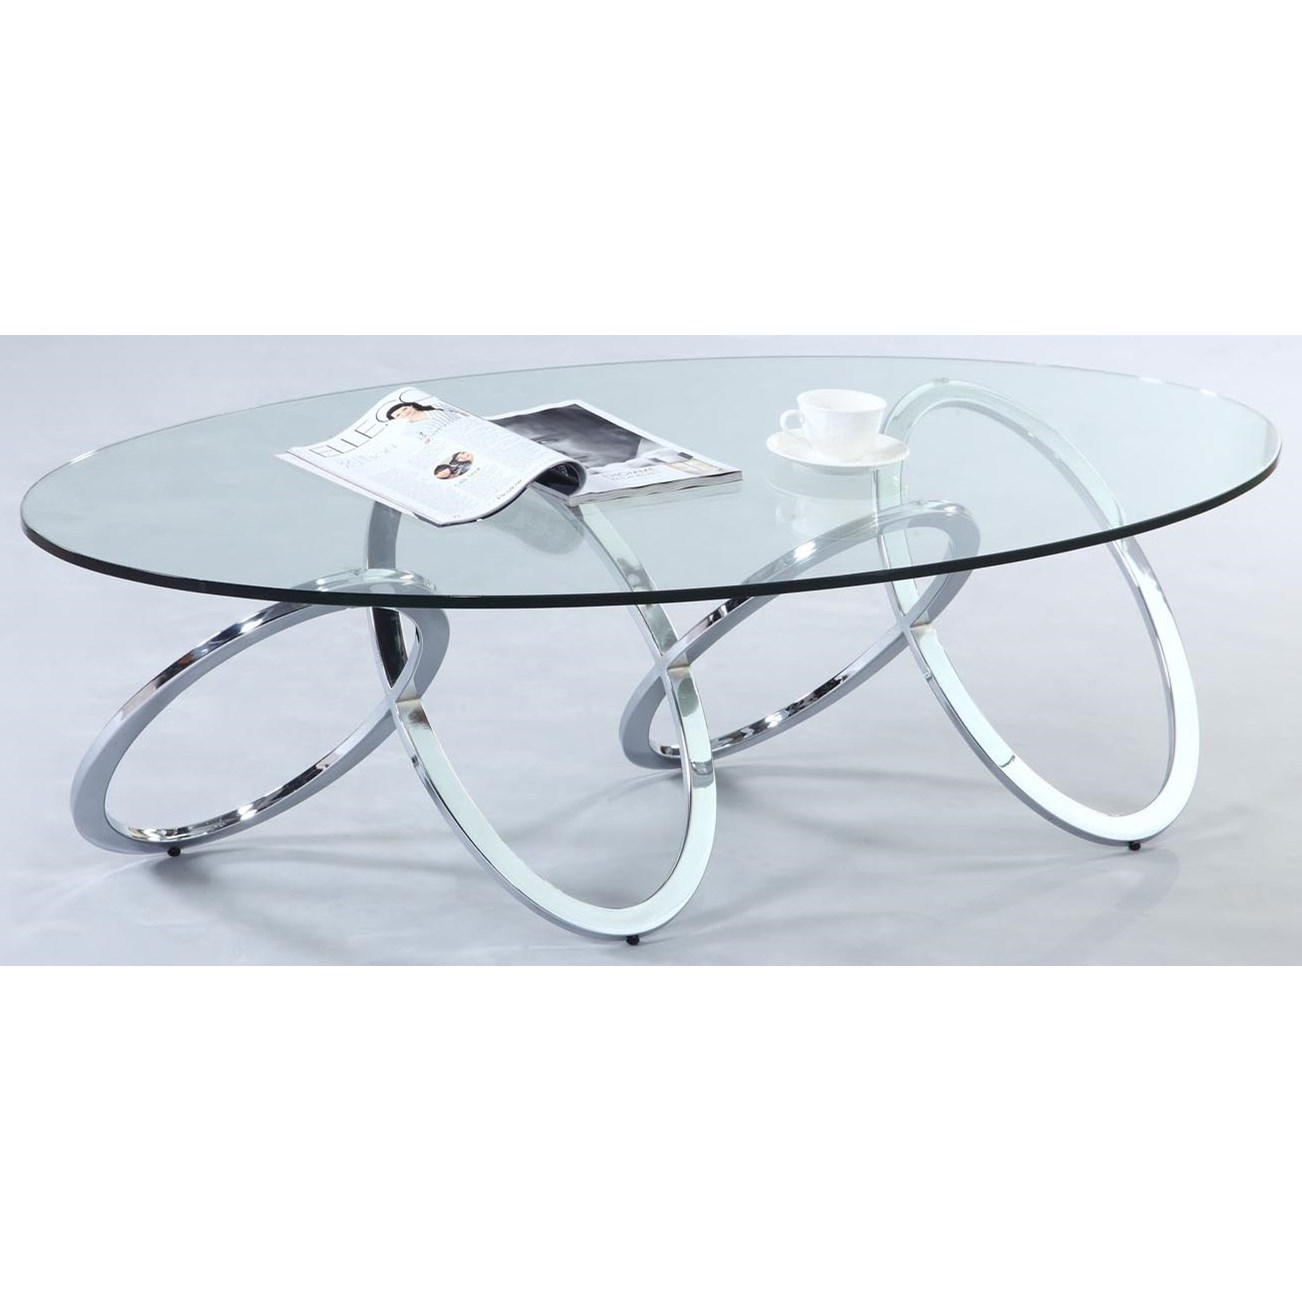 4036 Oval Cocktail Table by Chintaly Imports at Corner Furniture